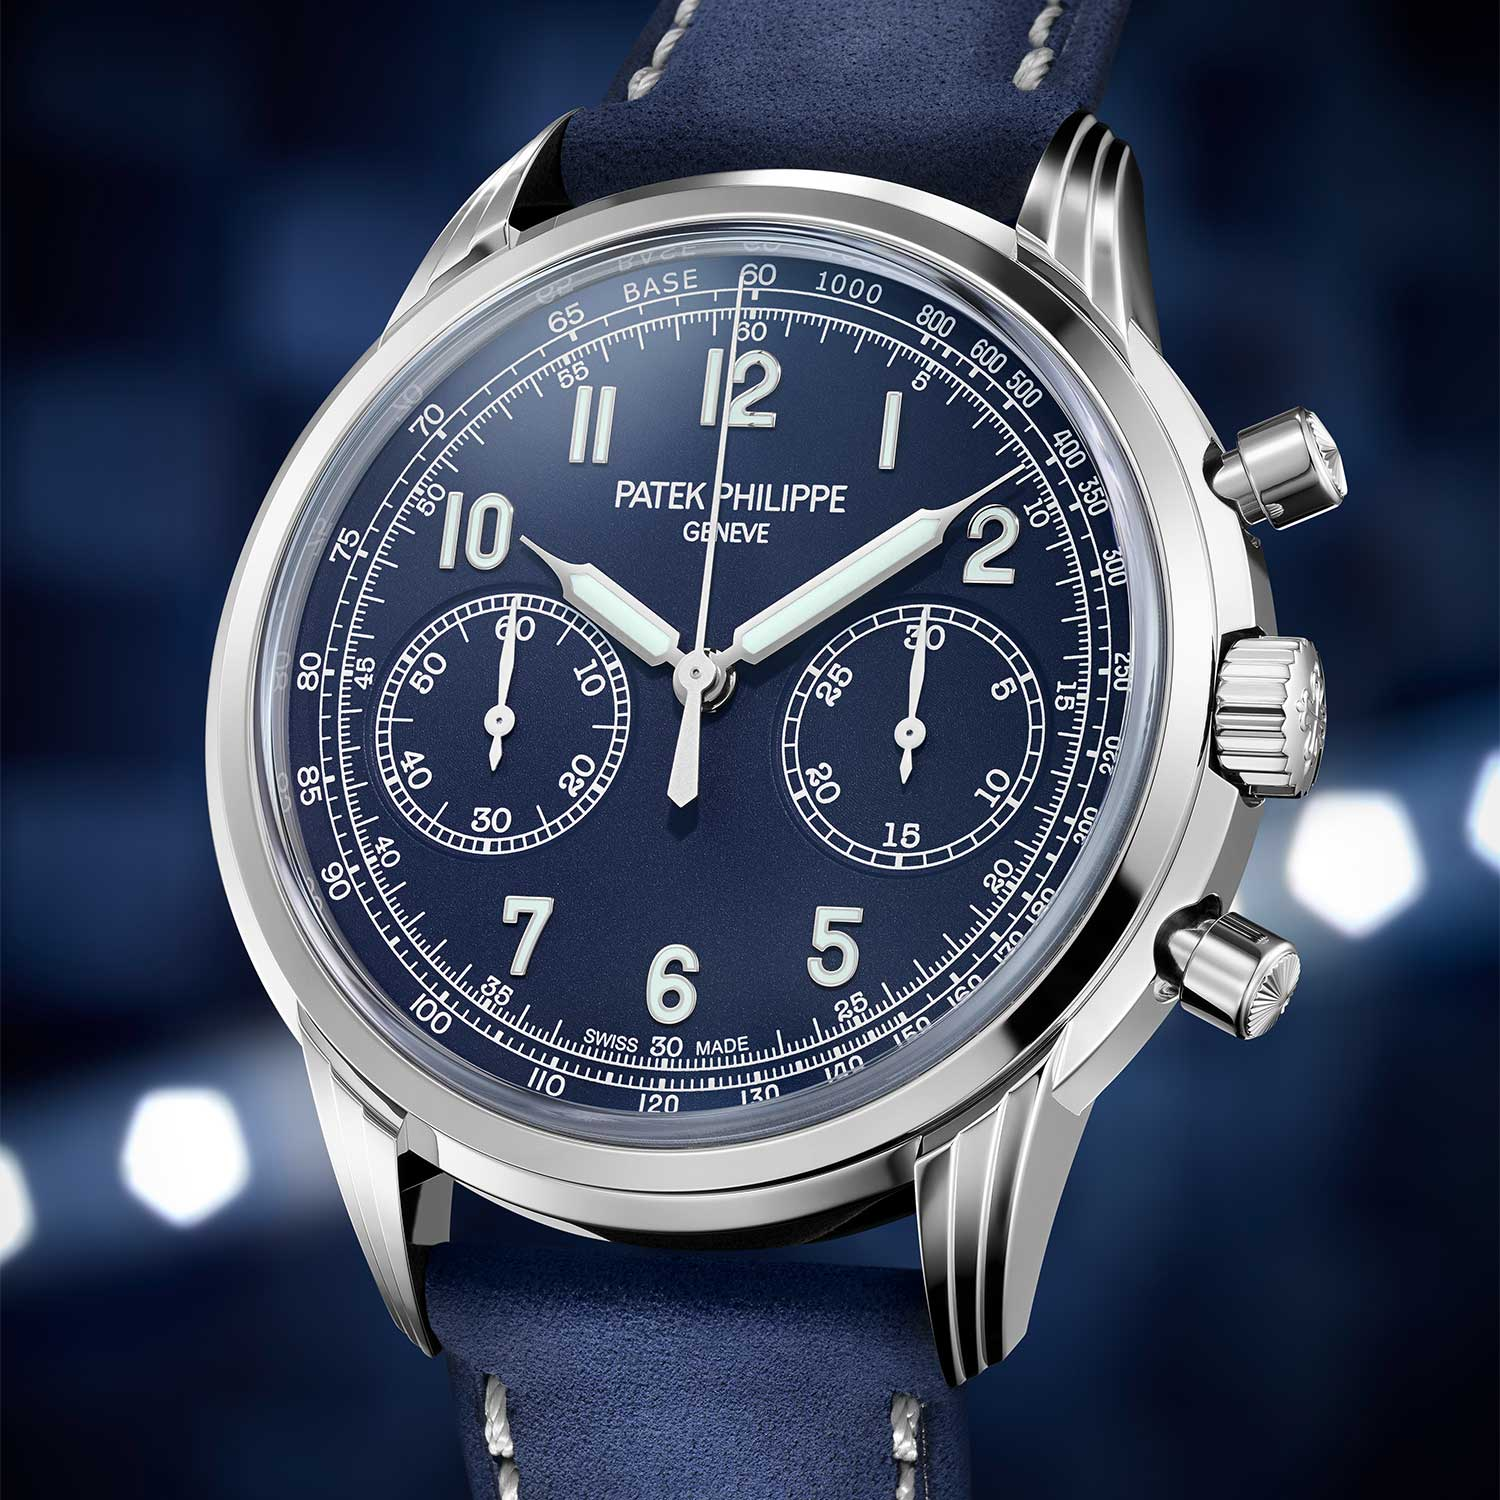 The Patek Philippe Ref. 5172G-001 was launched in 2019 with a blue dial featuring luminous Arabic numerals, hour and minute hands, and a tachymeter scale